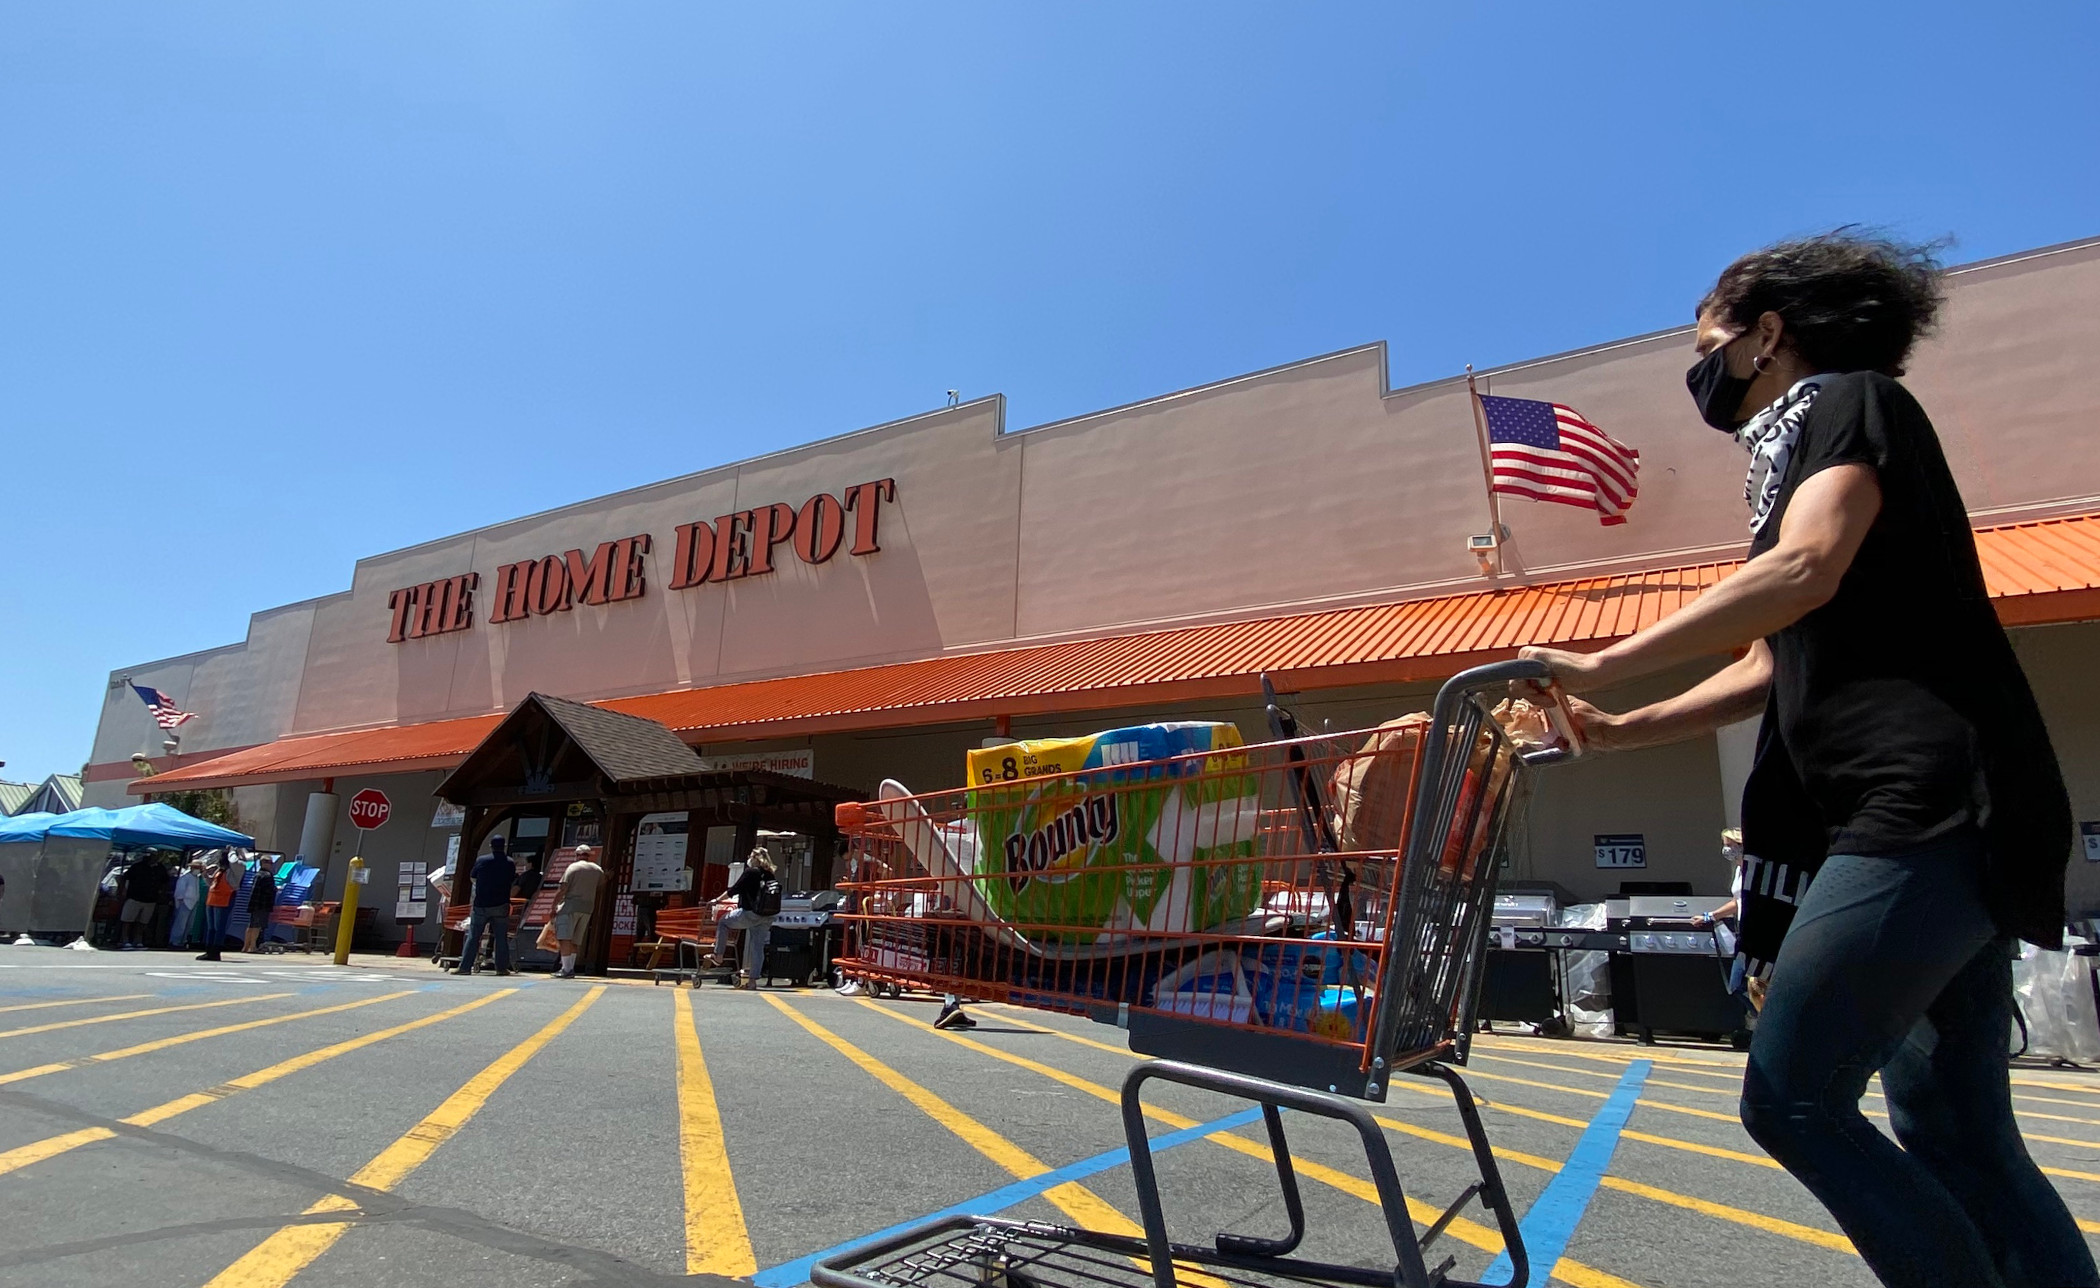 Home Depot was fined for hiring contractors that mishandled lead paint in home renovations. (Getty)